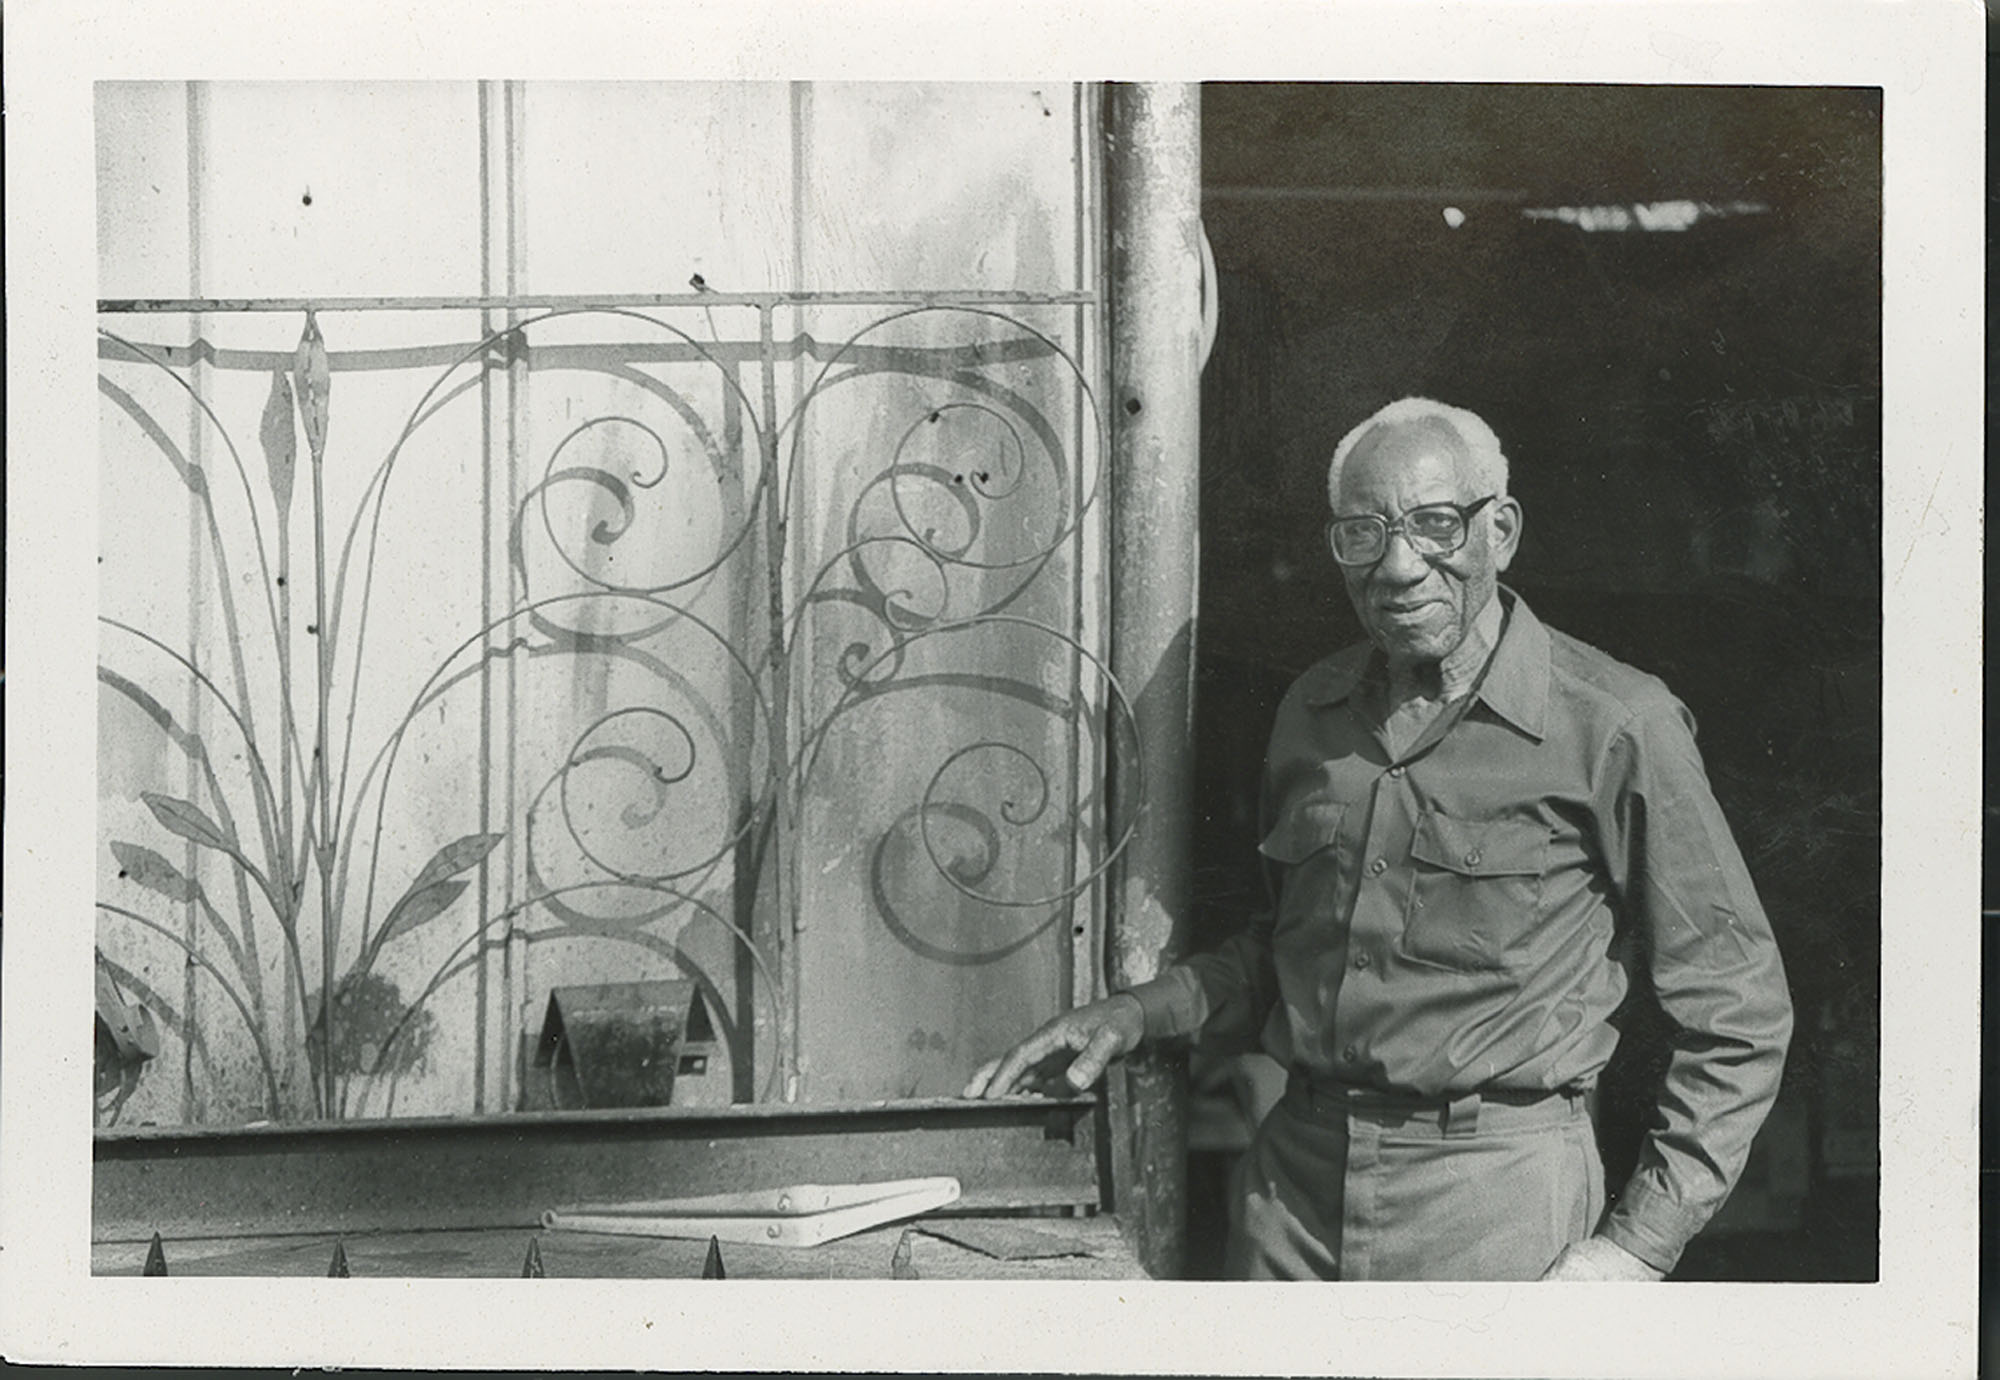 Photograph Philip Simmons standing next to railing outside his workshop.